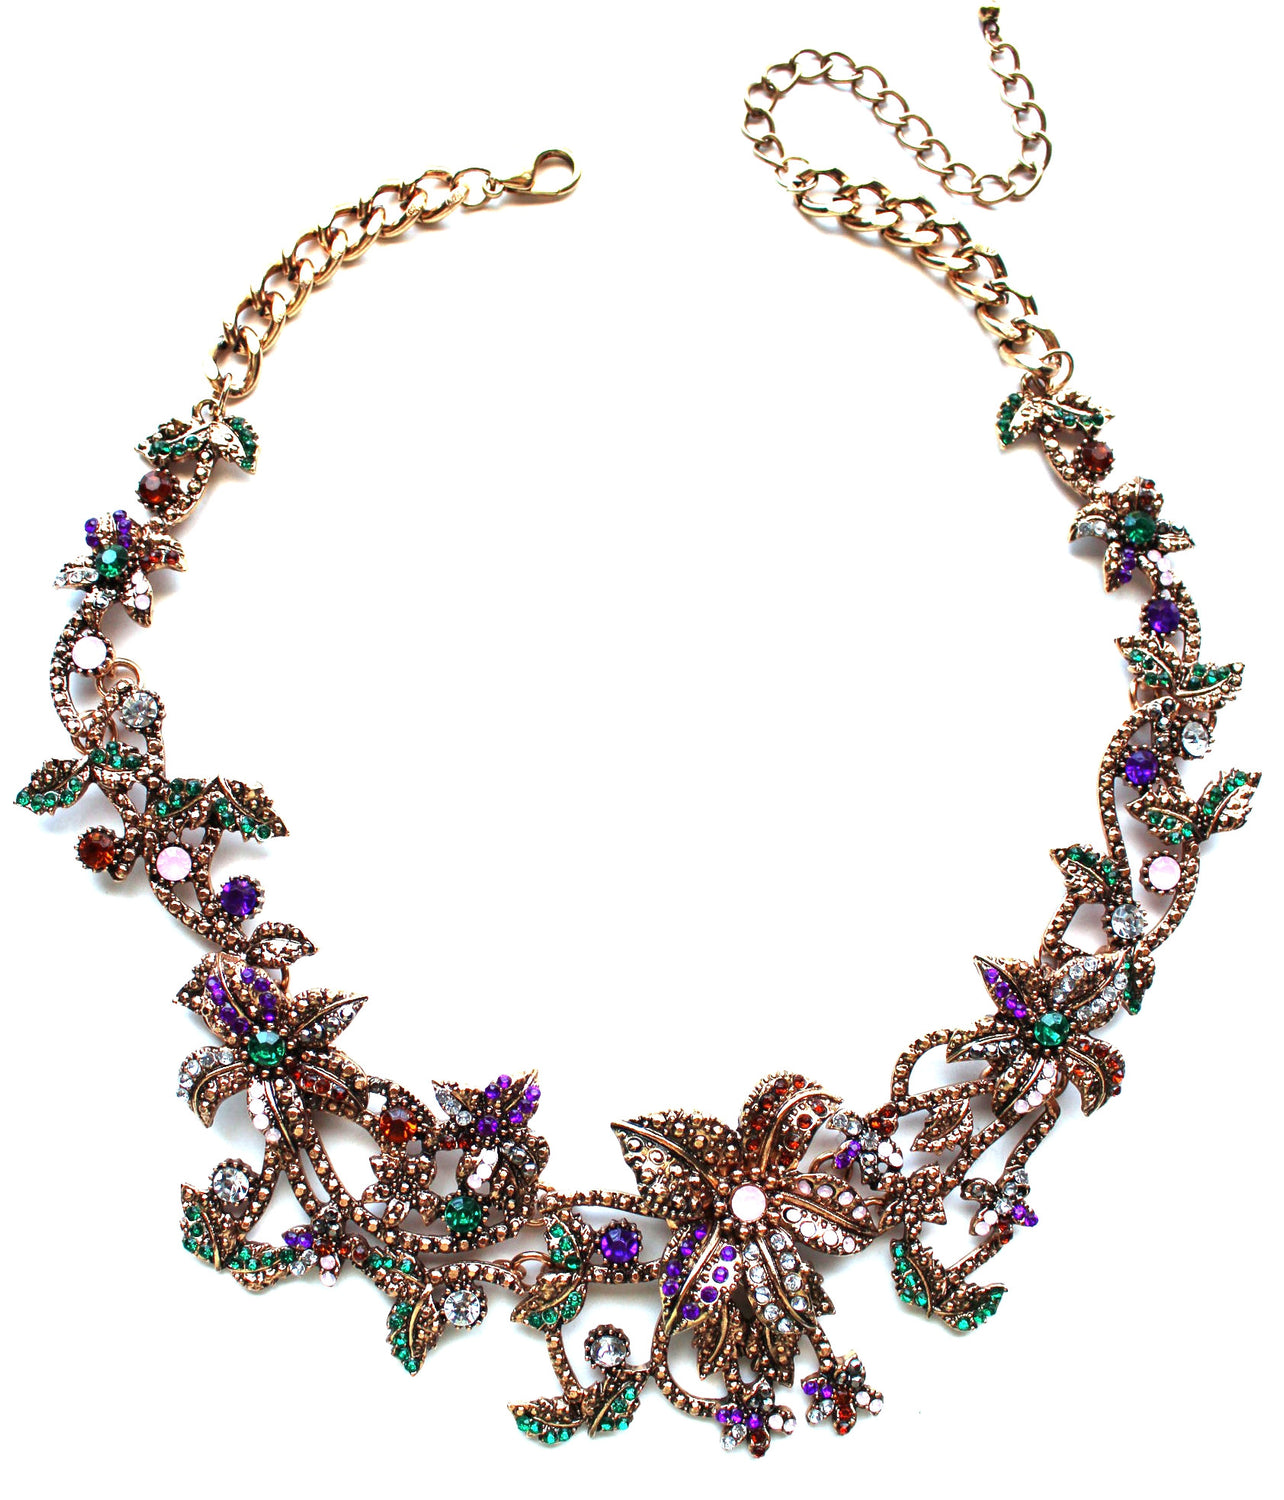 Garden Romance Statement Necklace